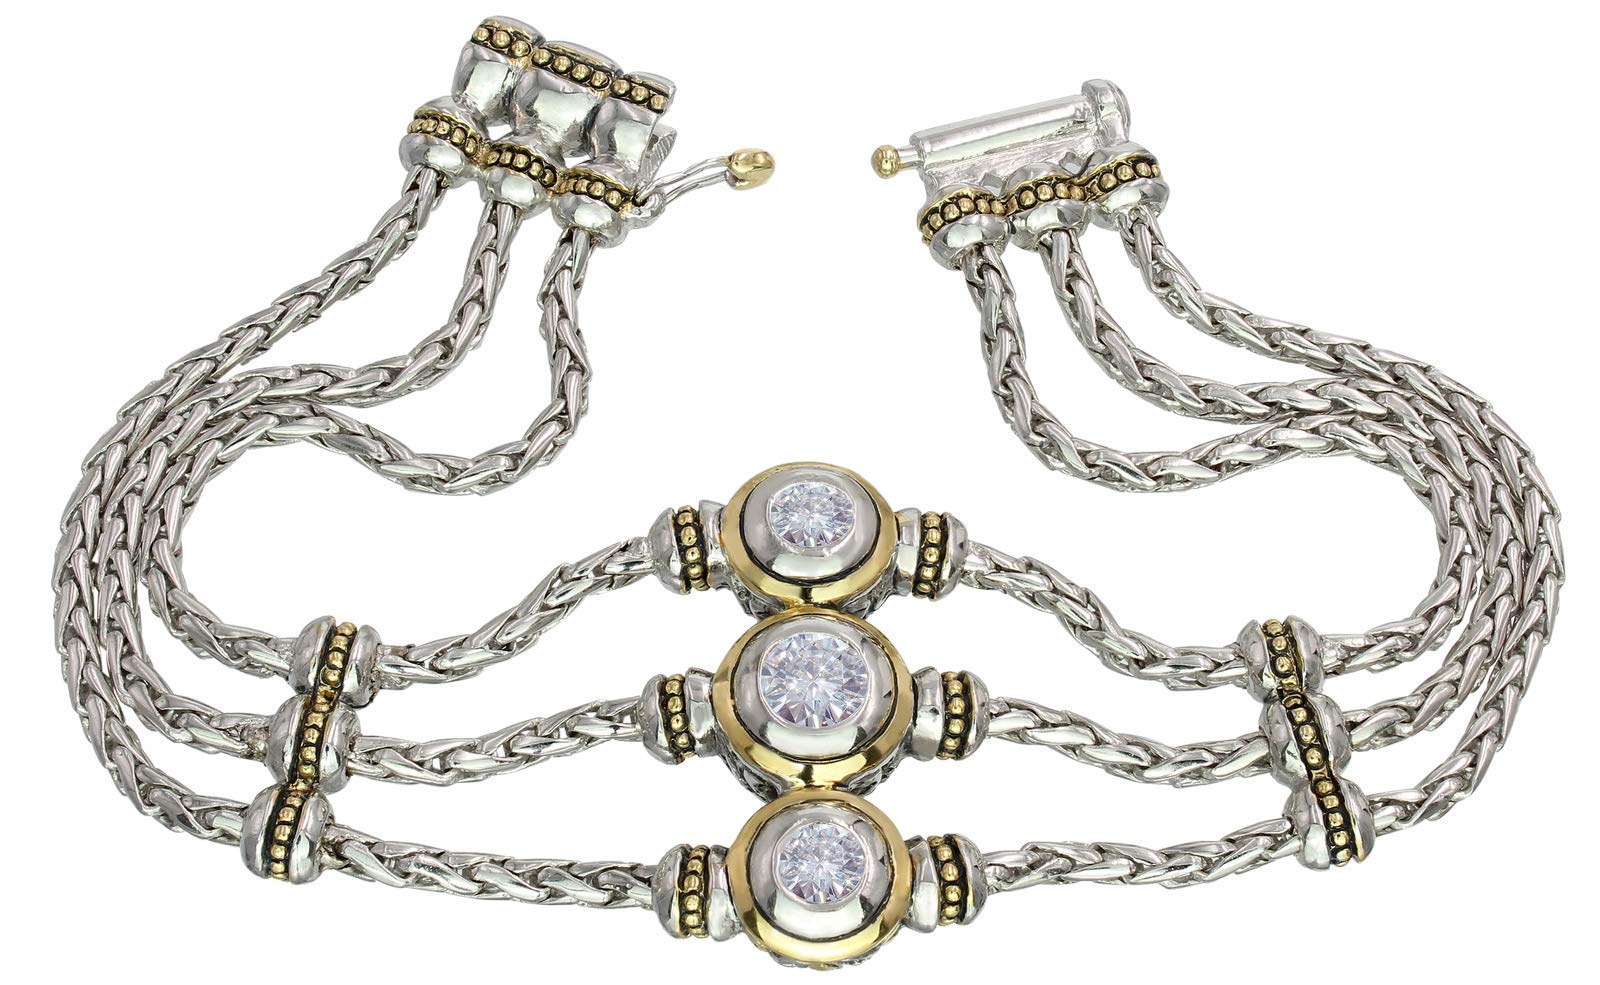 John Medeiros Silver and Gold Tone 3 Strand Bracelet with 3 Round Clear Cubic Zirconia Fancy Clasp Aprils Birthstone and Part of The Beijos Collection 7'' Made in America